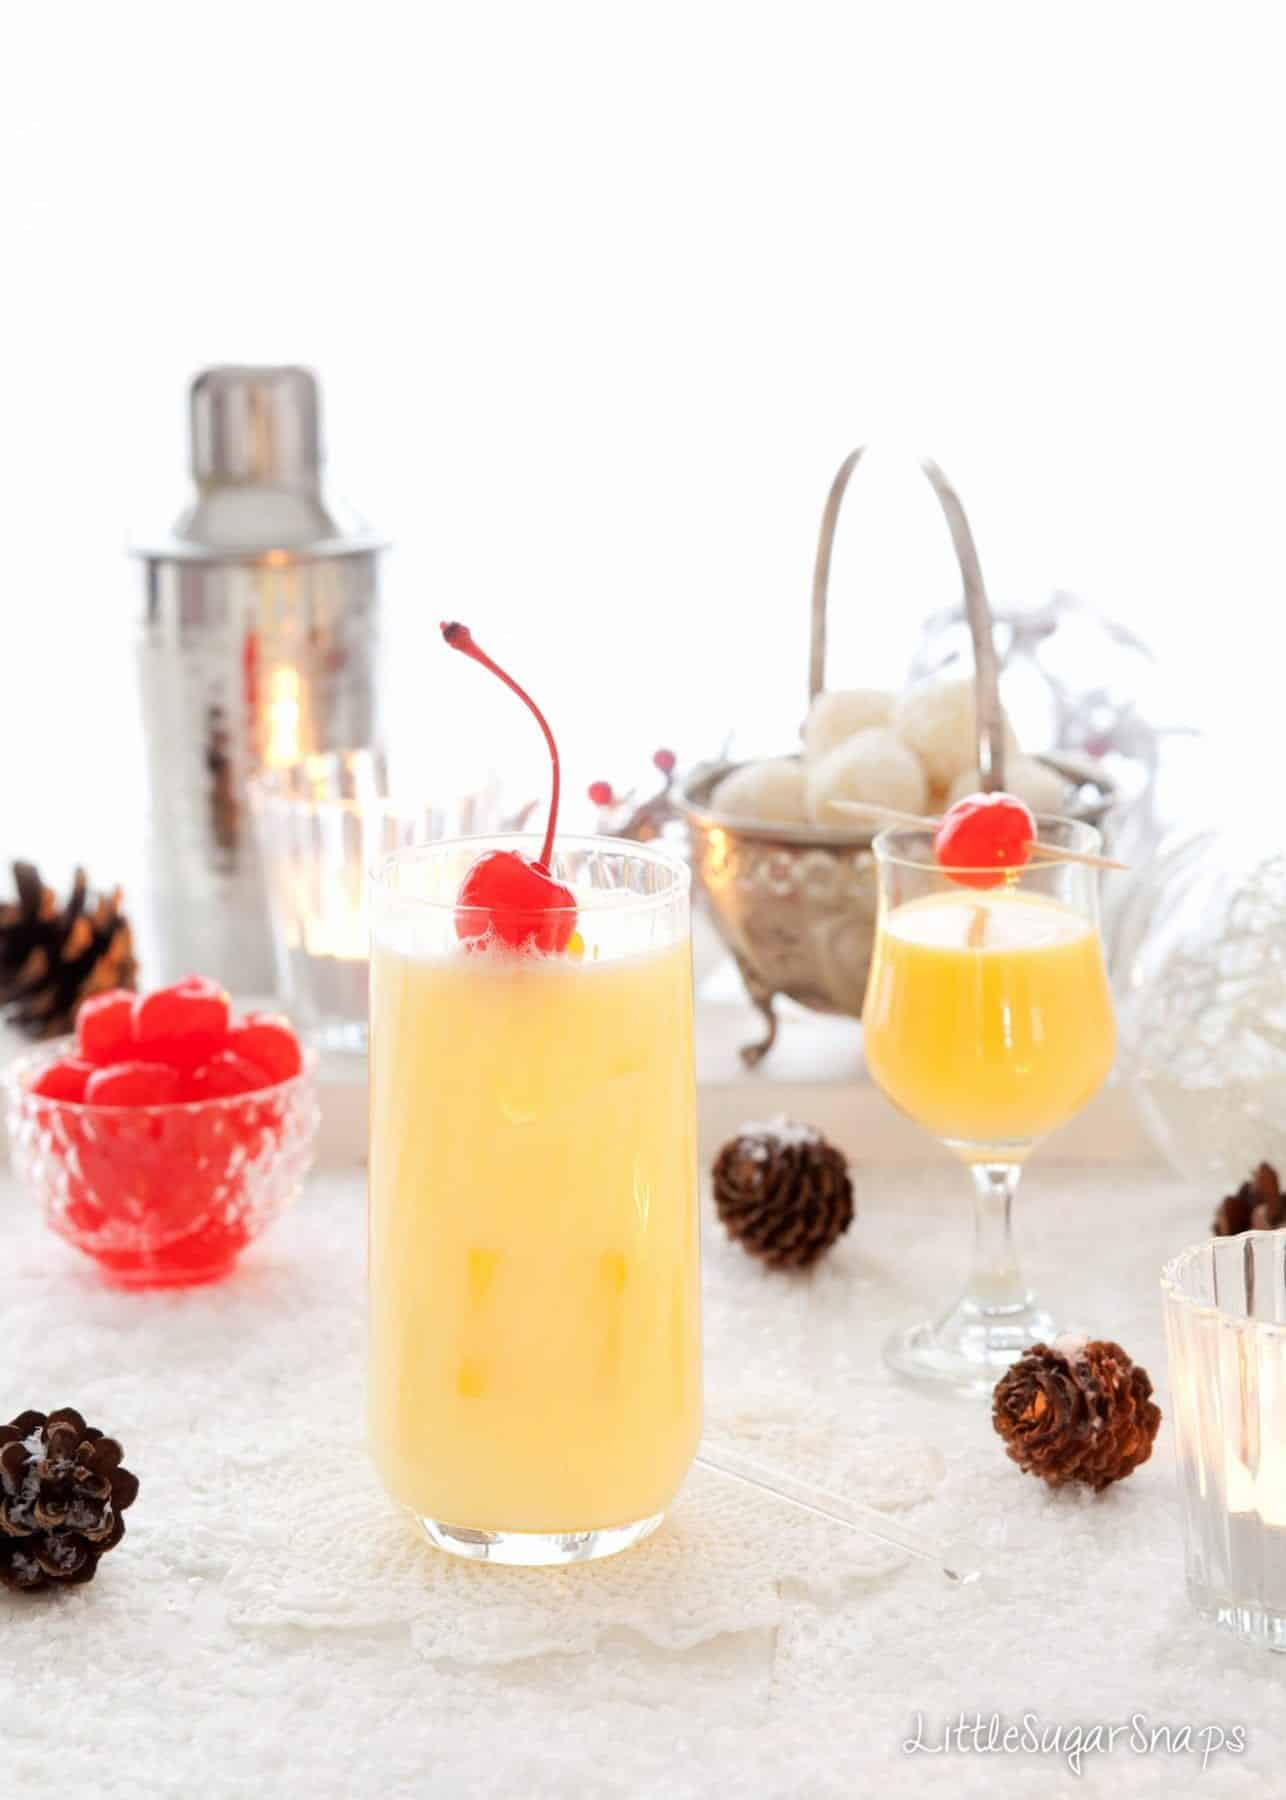 A classic snowball cocktail and a glass of Advocaat. Both are garnished with cocktail cherries.